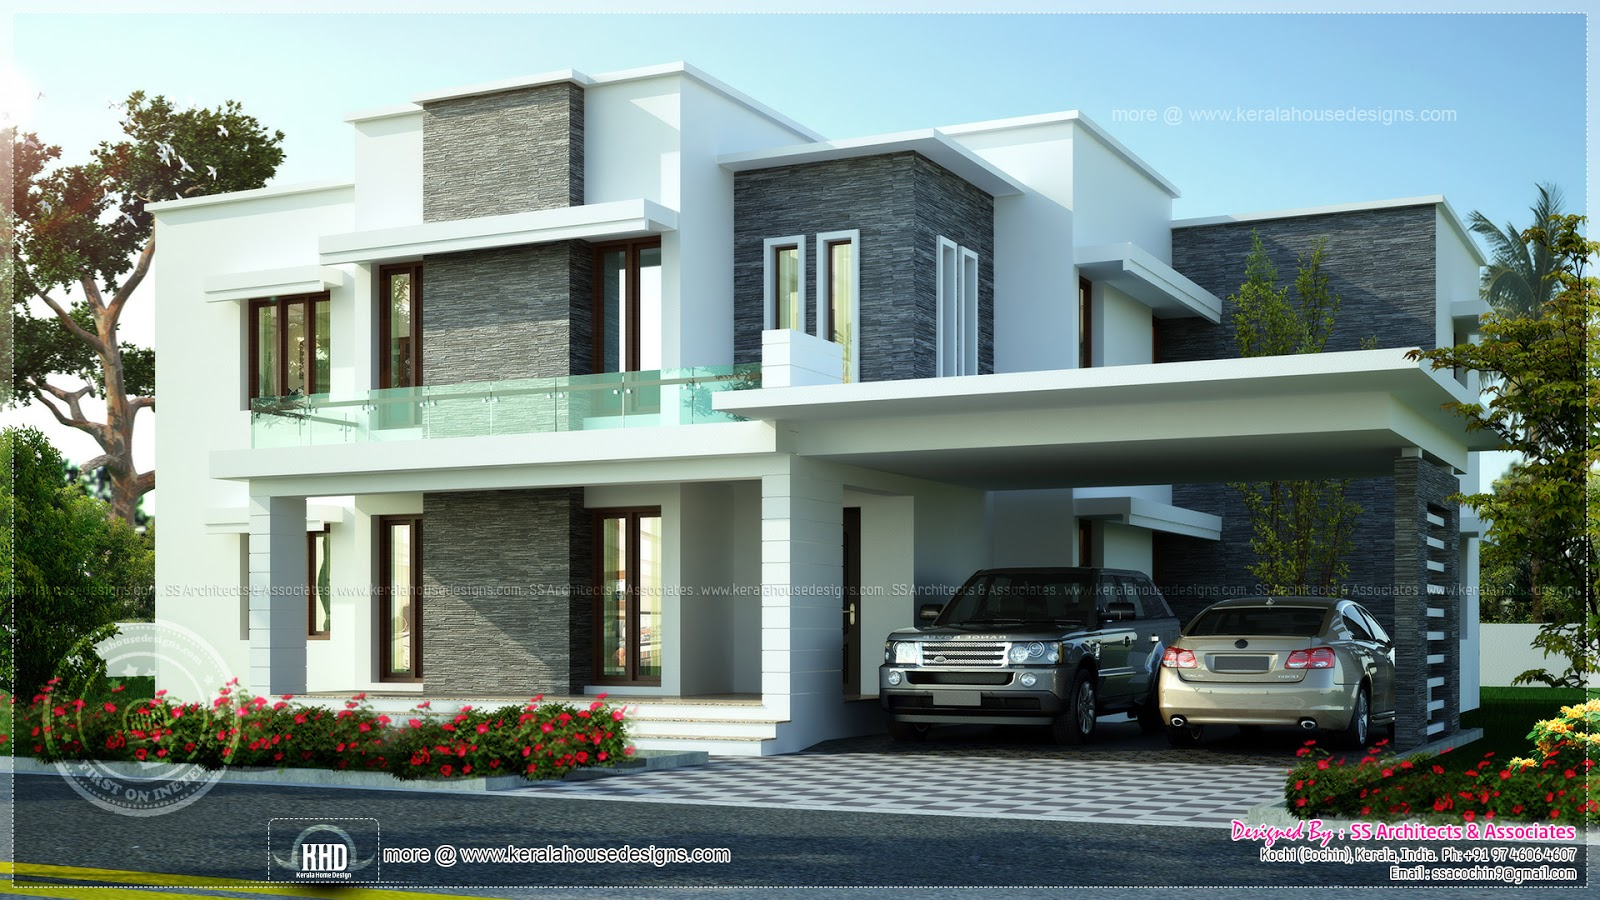 3600 sq ft contemporary villa exterior elevation home kerala plans. Black Bedroom Furniture Sets. Home Design Ideas